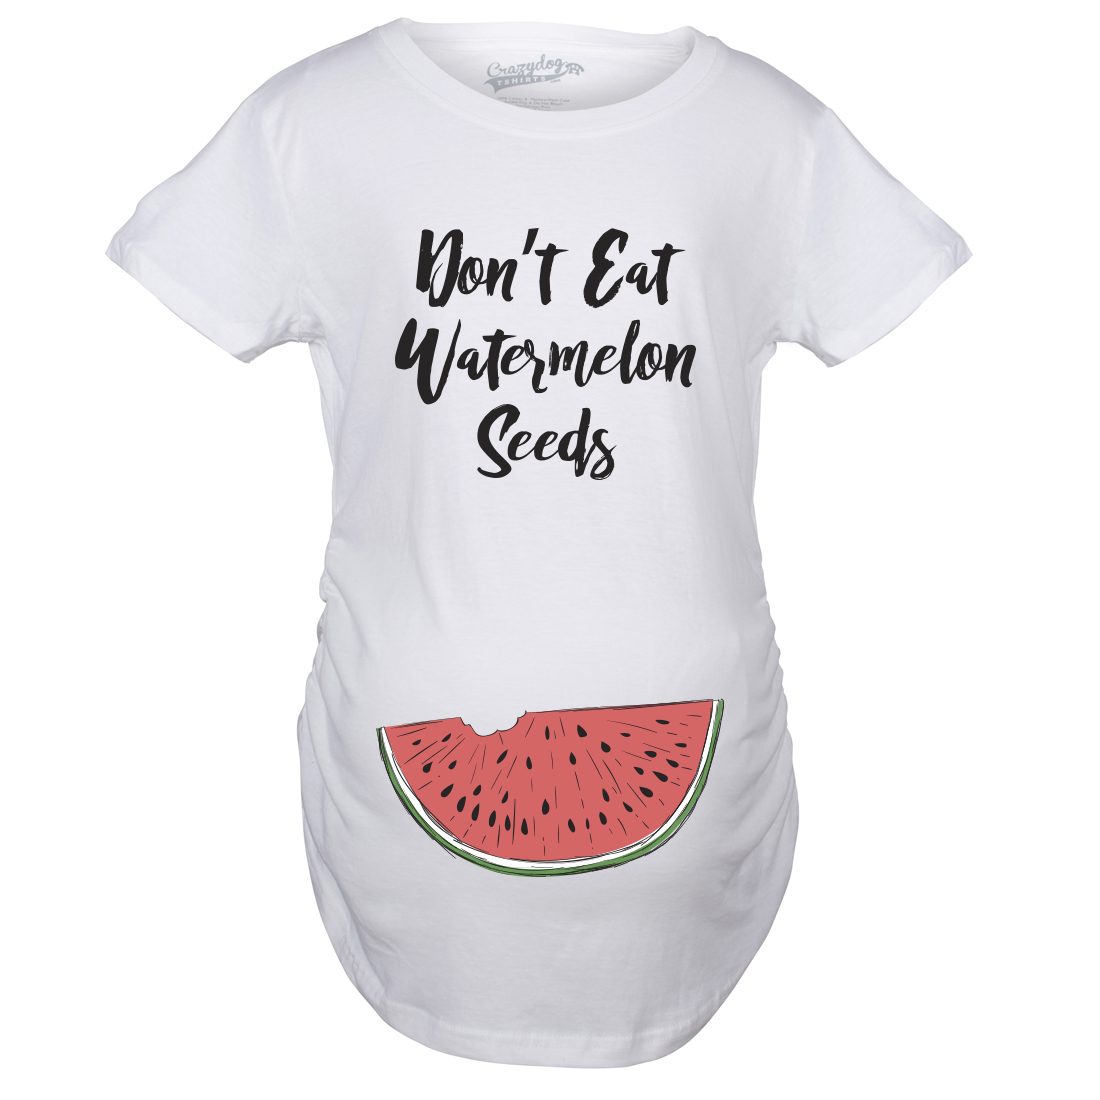 Funny Maternity Shirt Pregnancy Announcement Shirt Don/'t Eat Watermelon Seeds Customizable Tee Mommy To Be Shirt